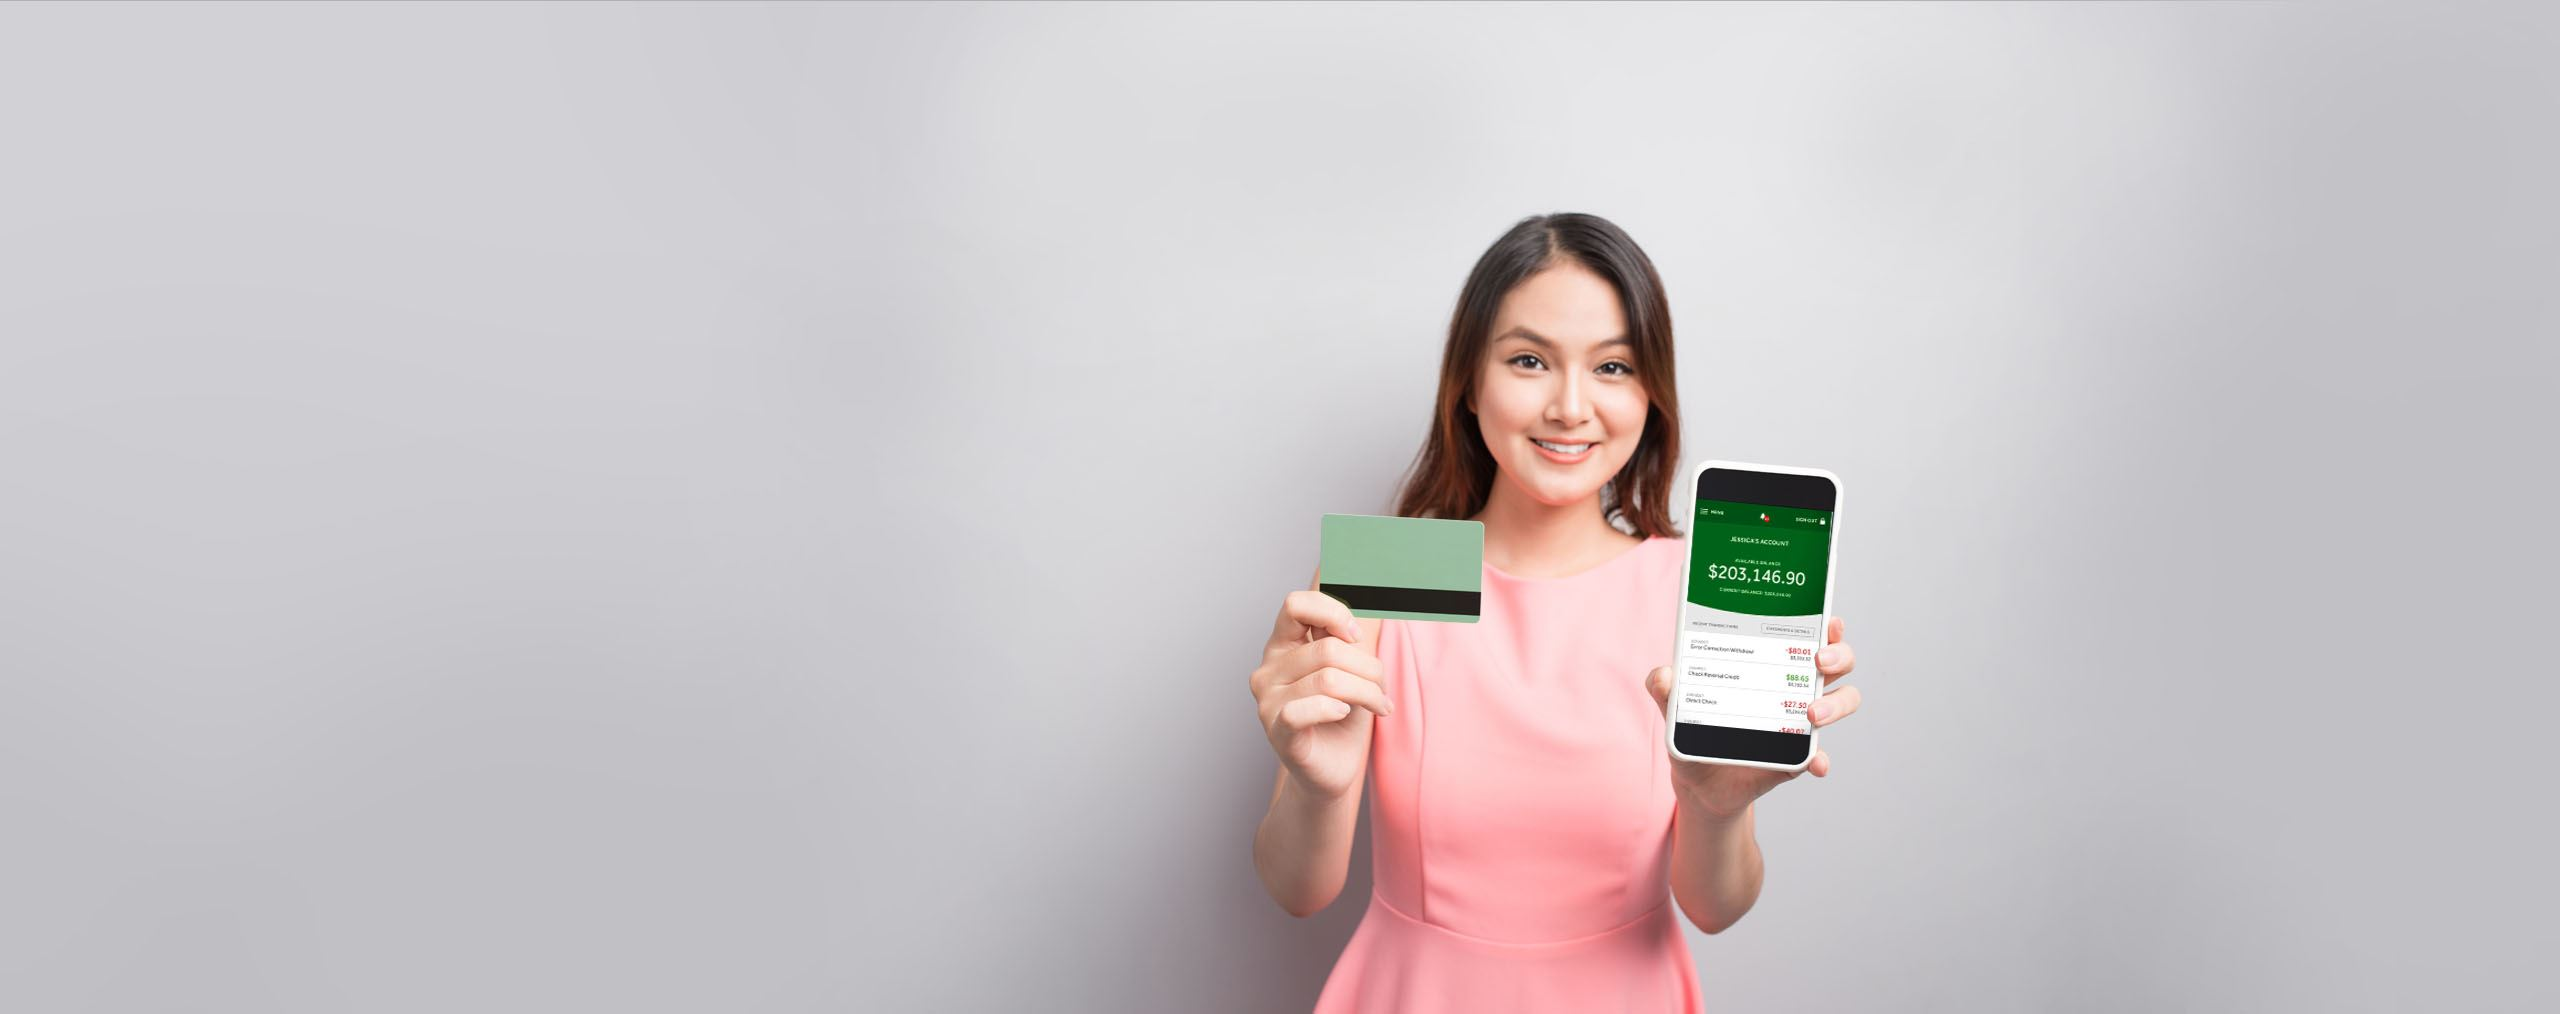 Woman holding phone and credit card